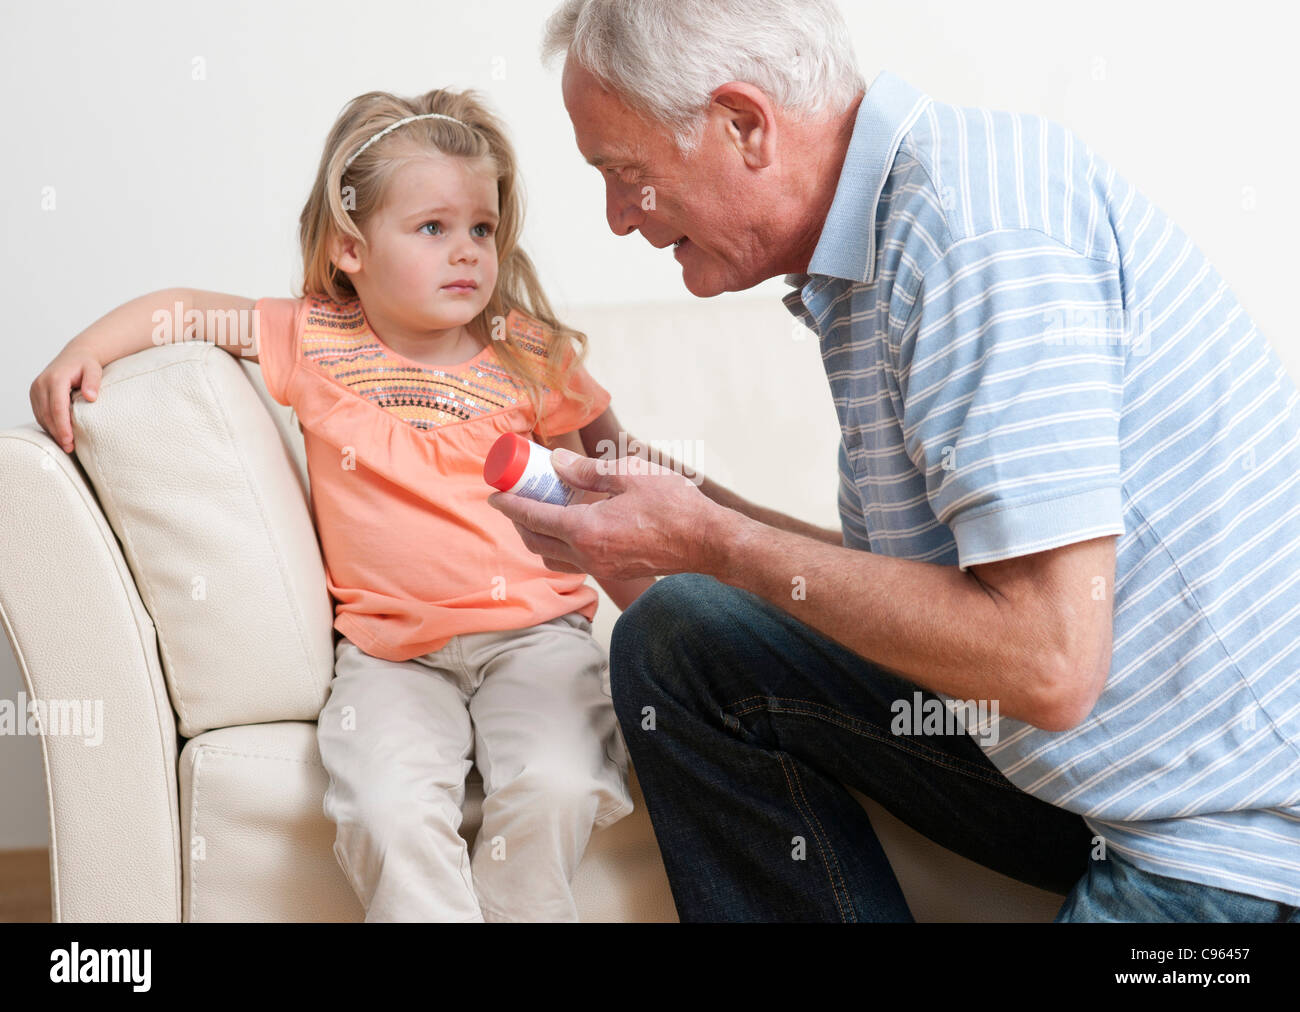 First aid for poisoning. Man asking a young girl if she has swallowed some pills. - Stock Image